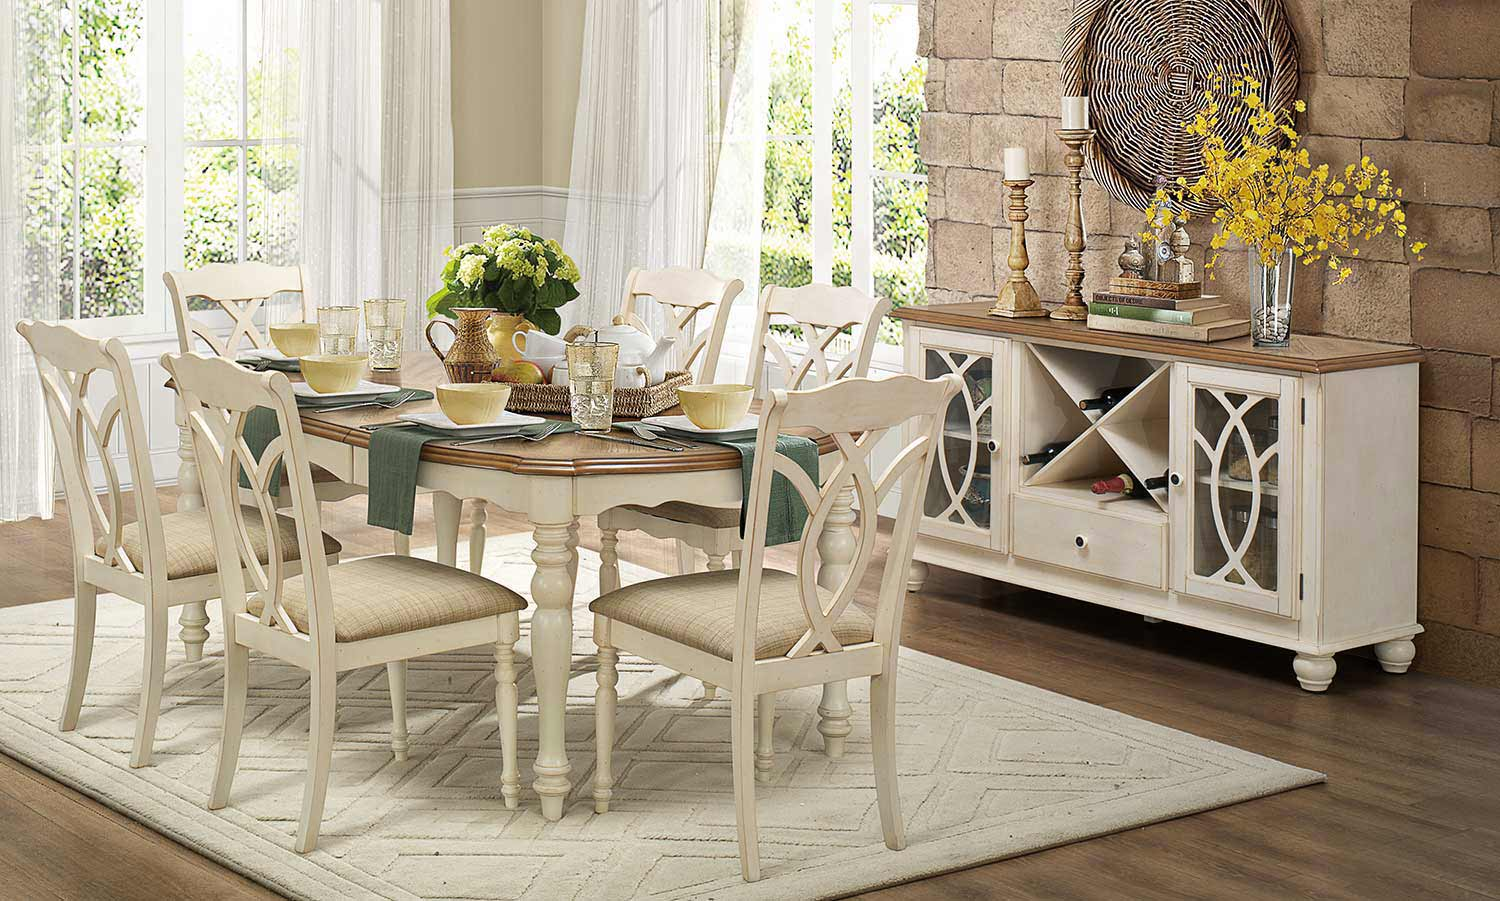 Homelegance azalea dining set antique white 5145 dining for White dinette sets